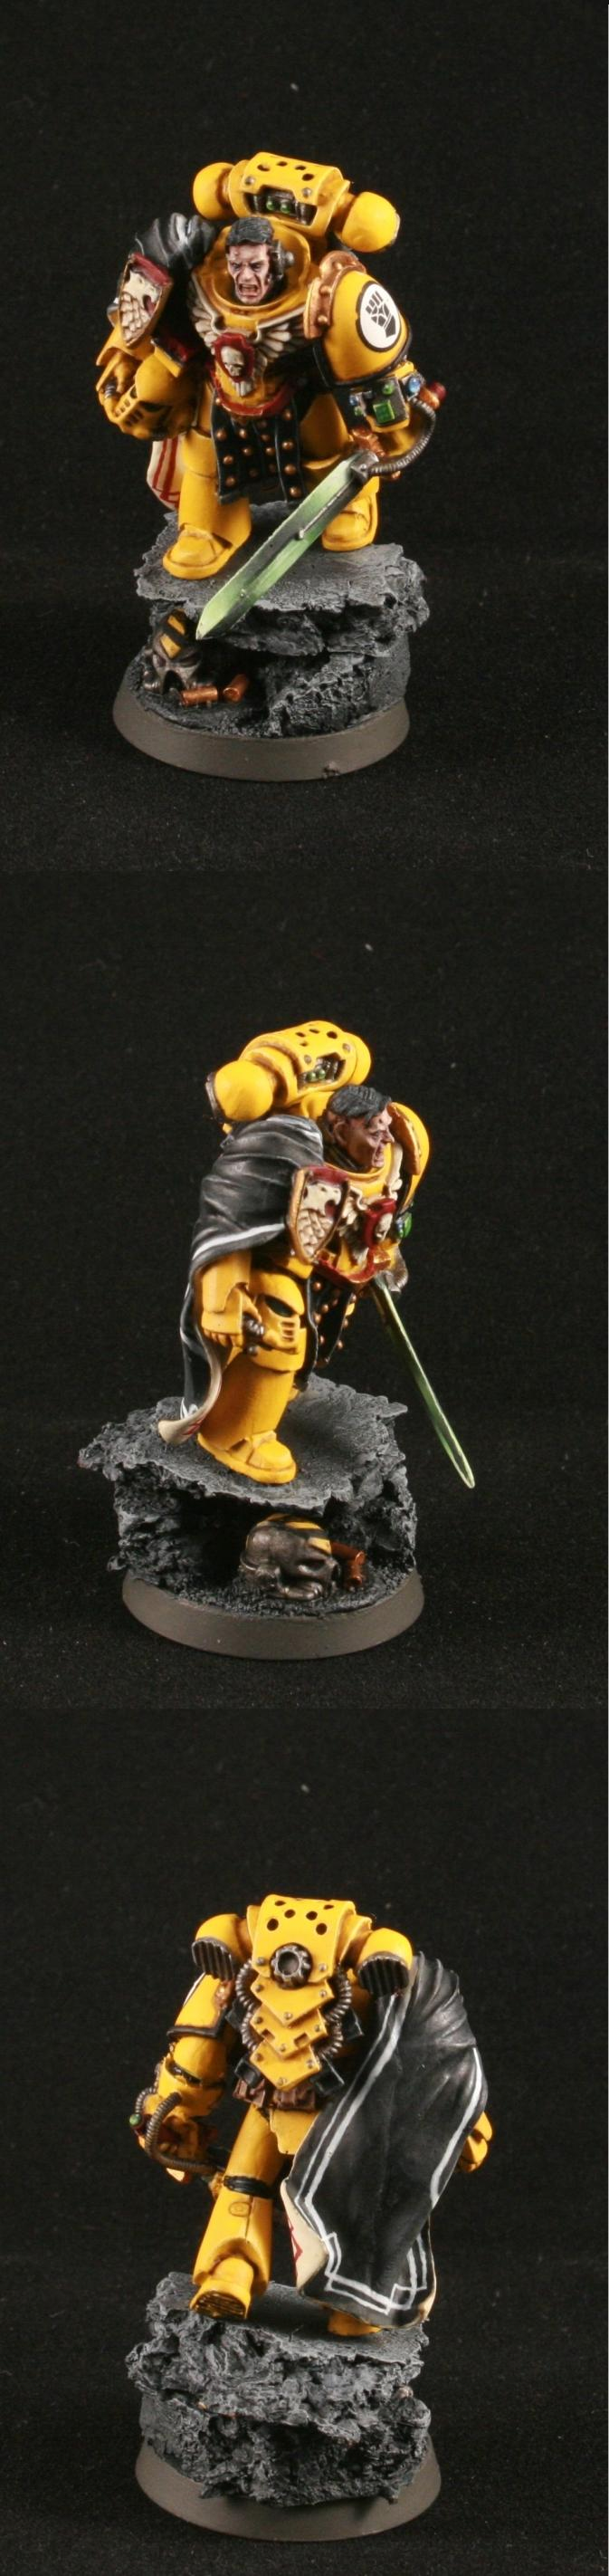 Captain, Forge World, Imperial Fists, Mkiv Armor, Space Marines